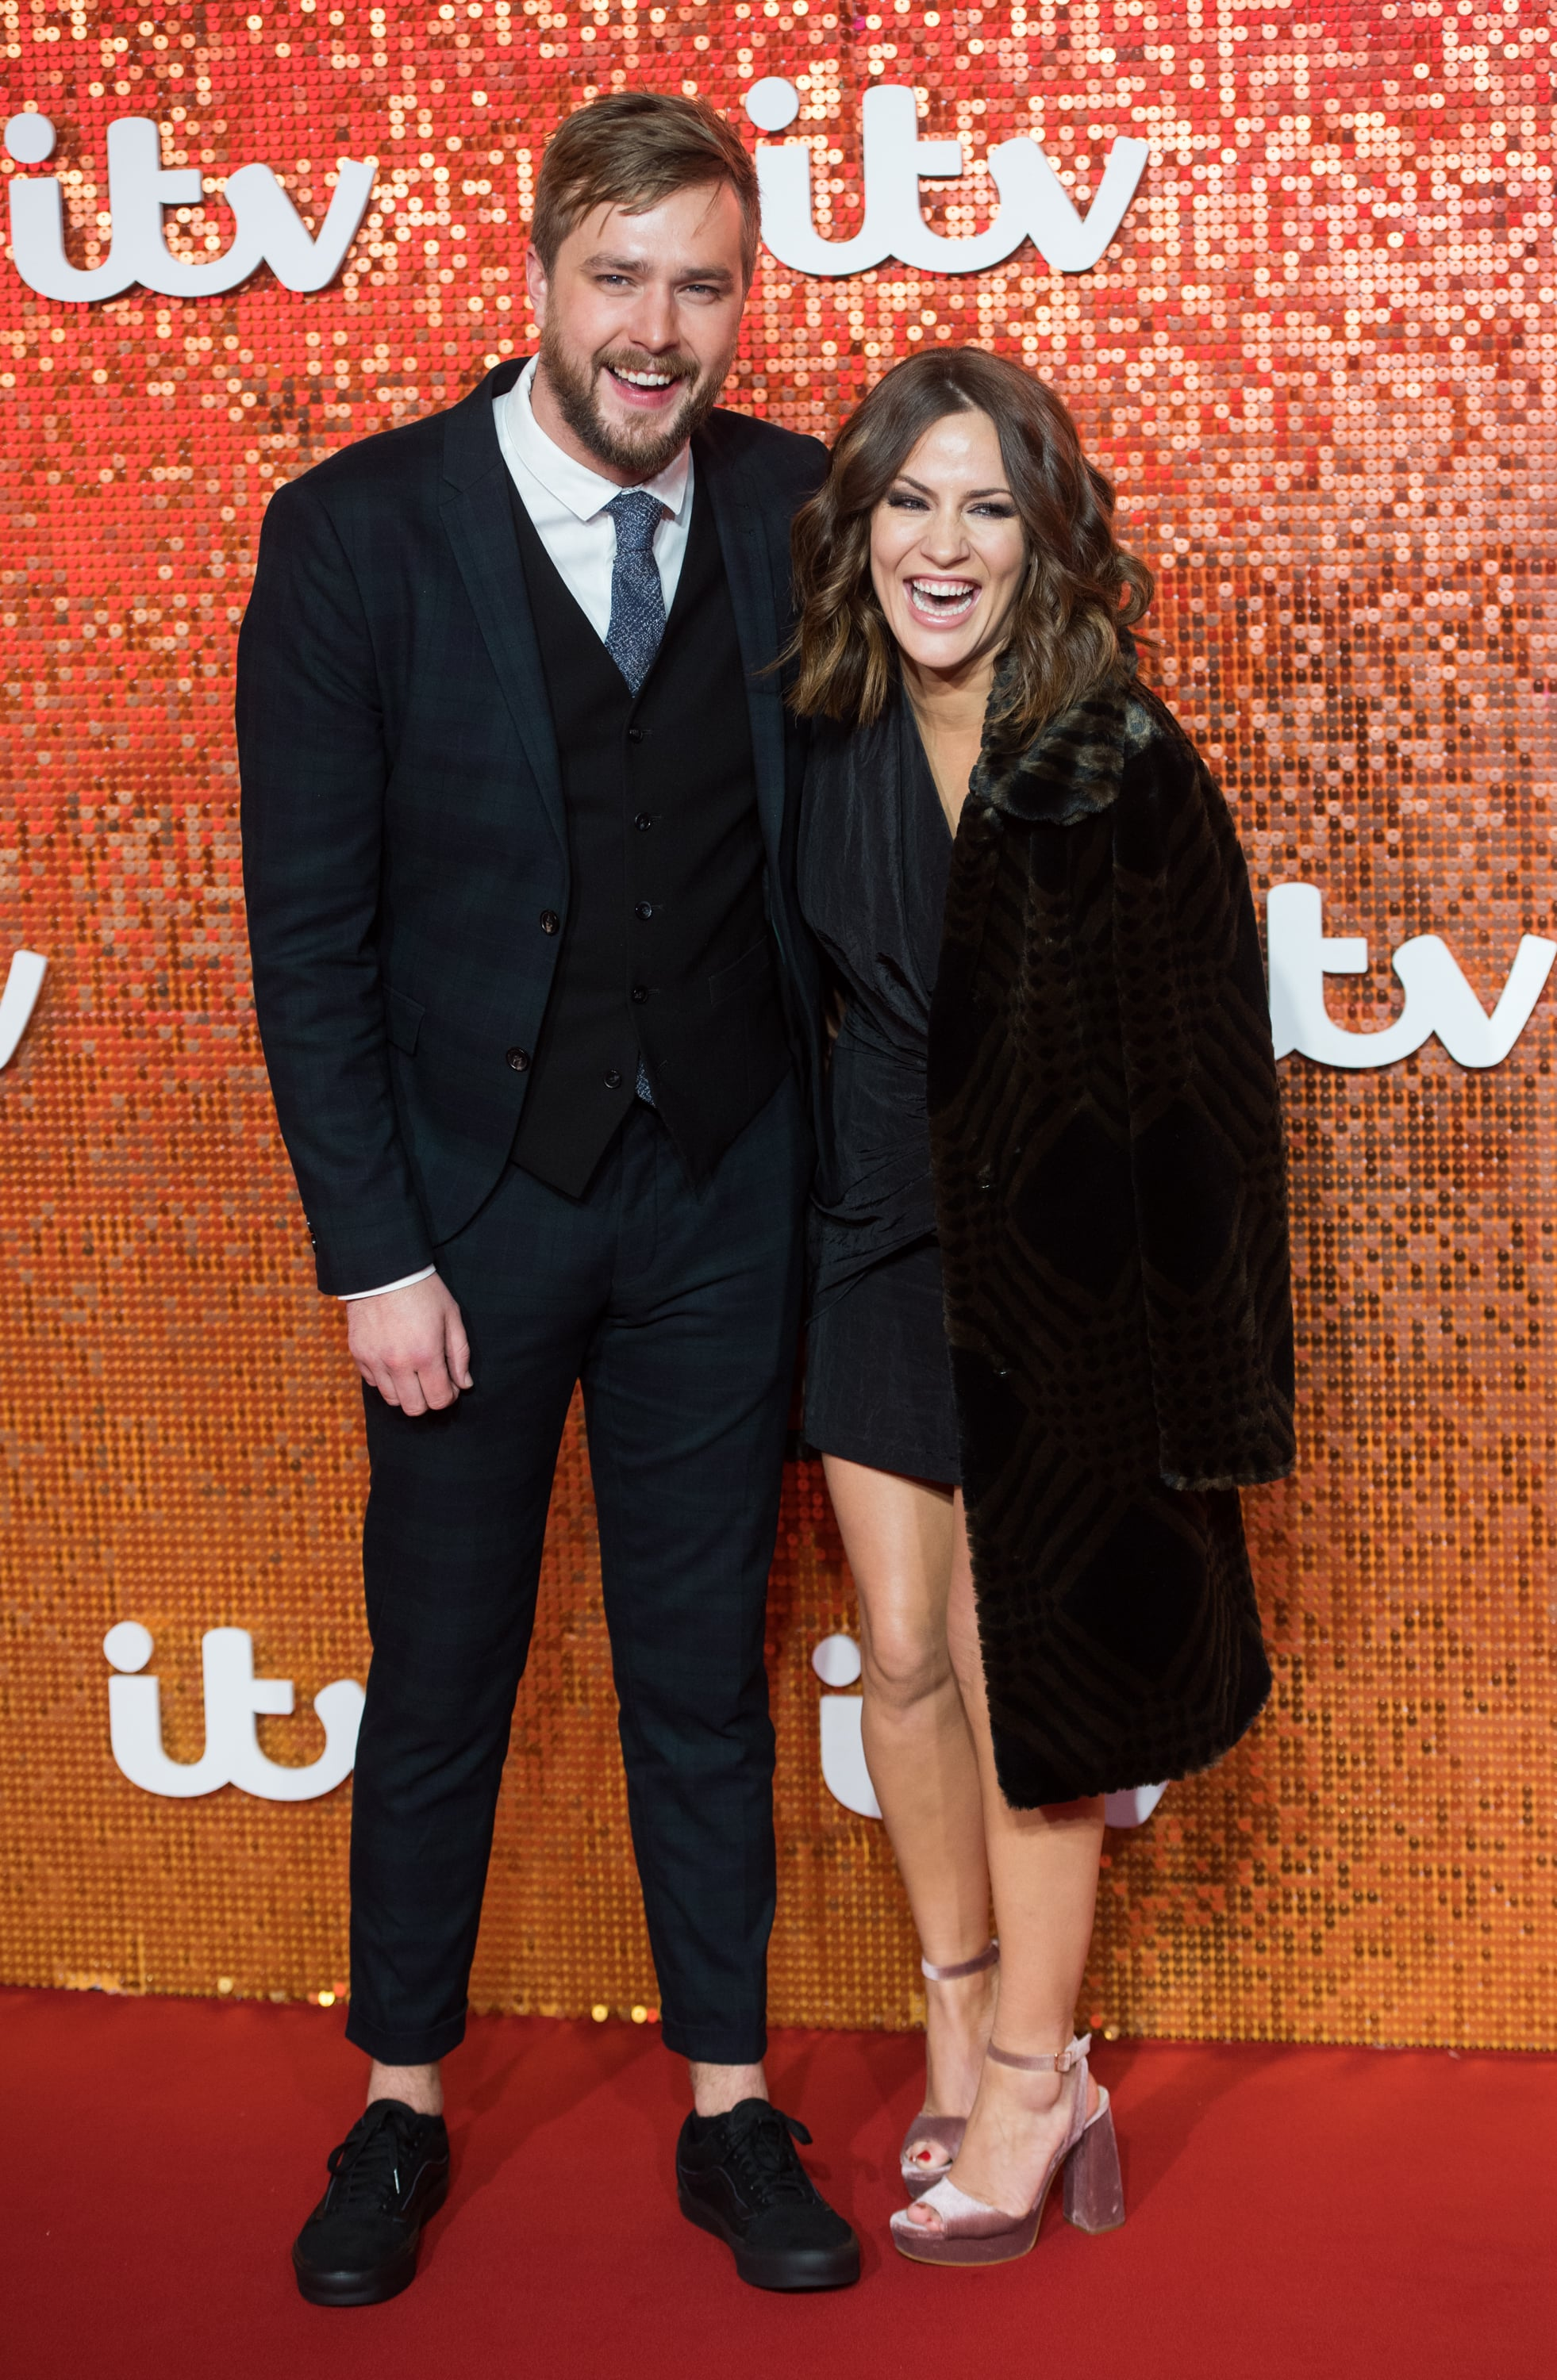 LONDON, ENGLAND - NOVEMBER 09:  Caroline Flack and Iain Stirling arriving at the ITV Gala held at the London Palladium on November 9, 2017 in London, England.  (Photo by Samir Hussein/WireImage)